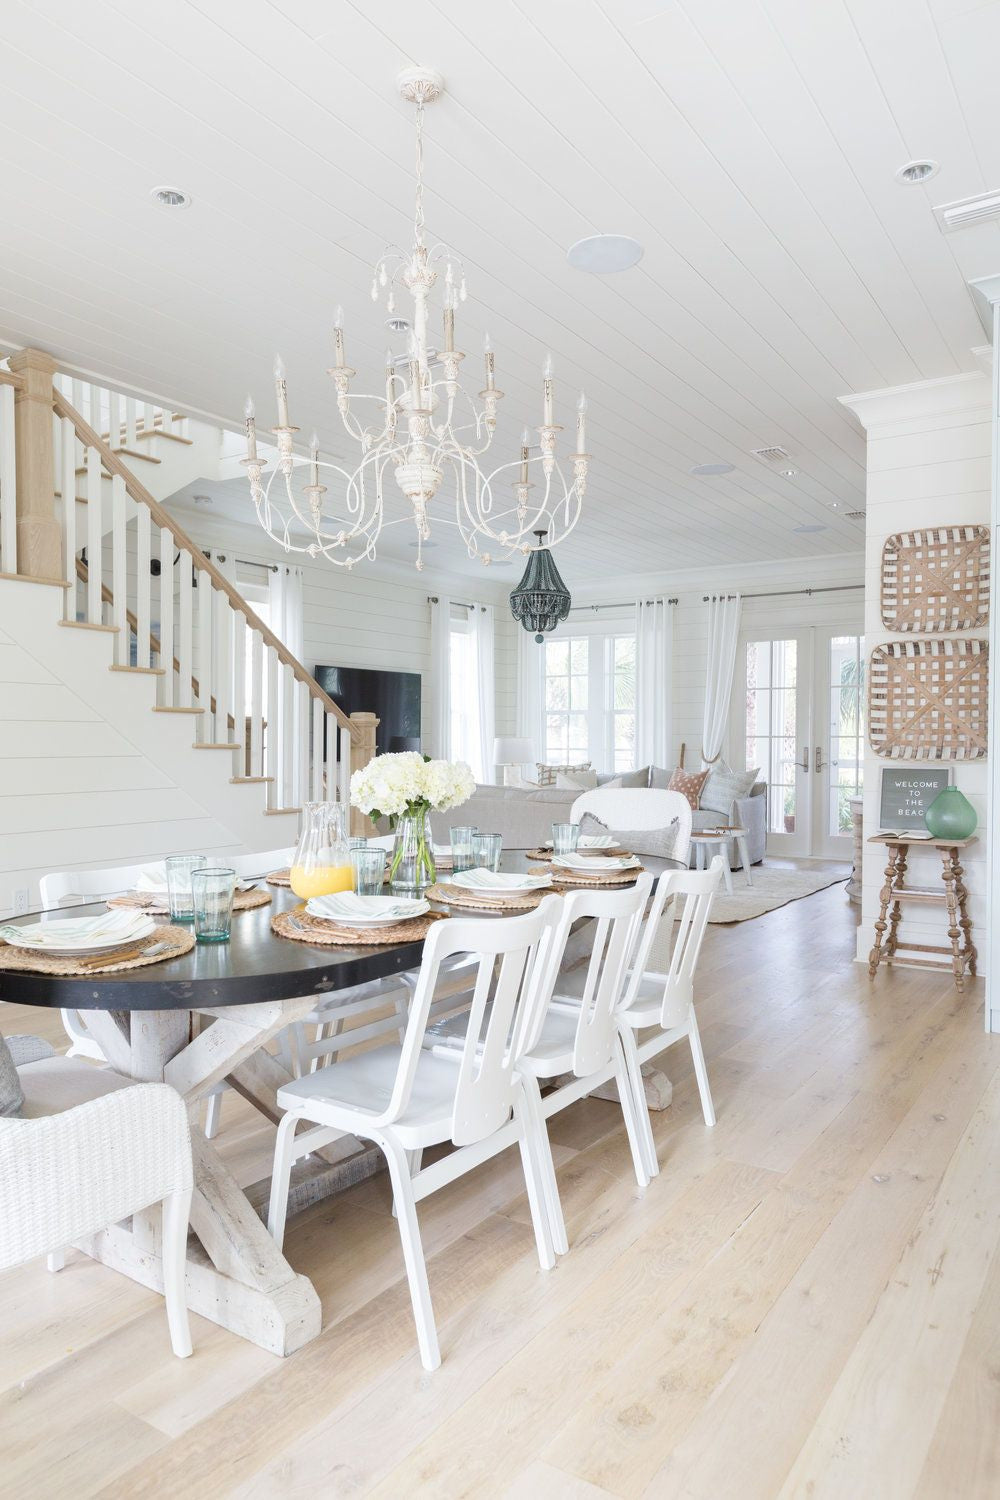 Dream Beach Houses To Drive Your Decor Inspiration